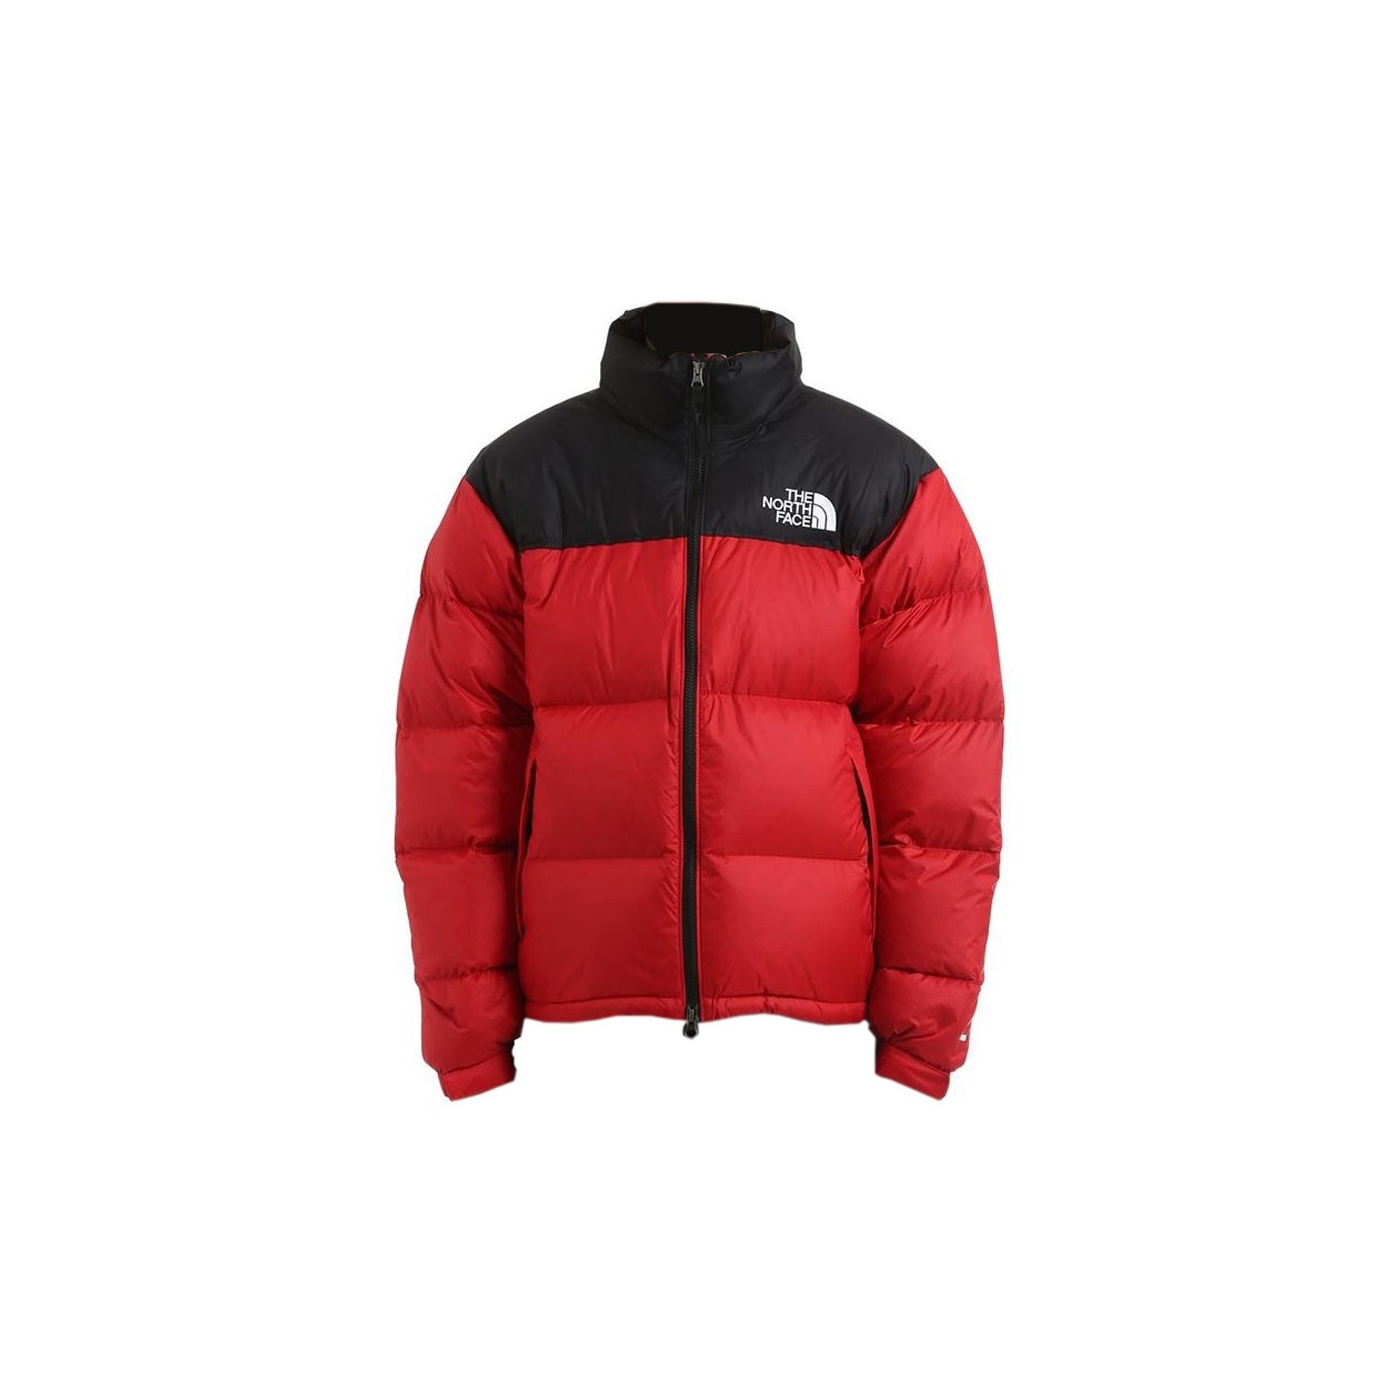 aaa45e7dbe Veste The North Face M 1996 Retro Nuptse Tnf Red | Alltricks.com